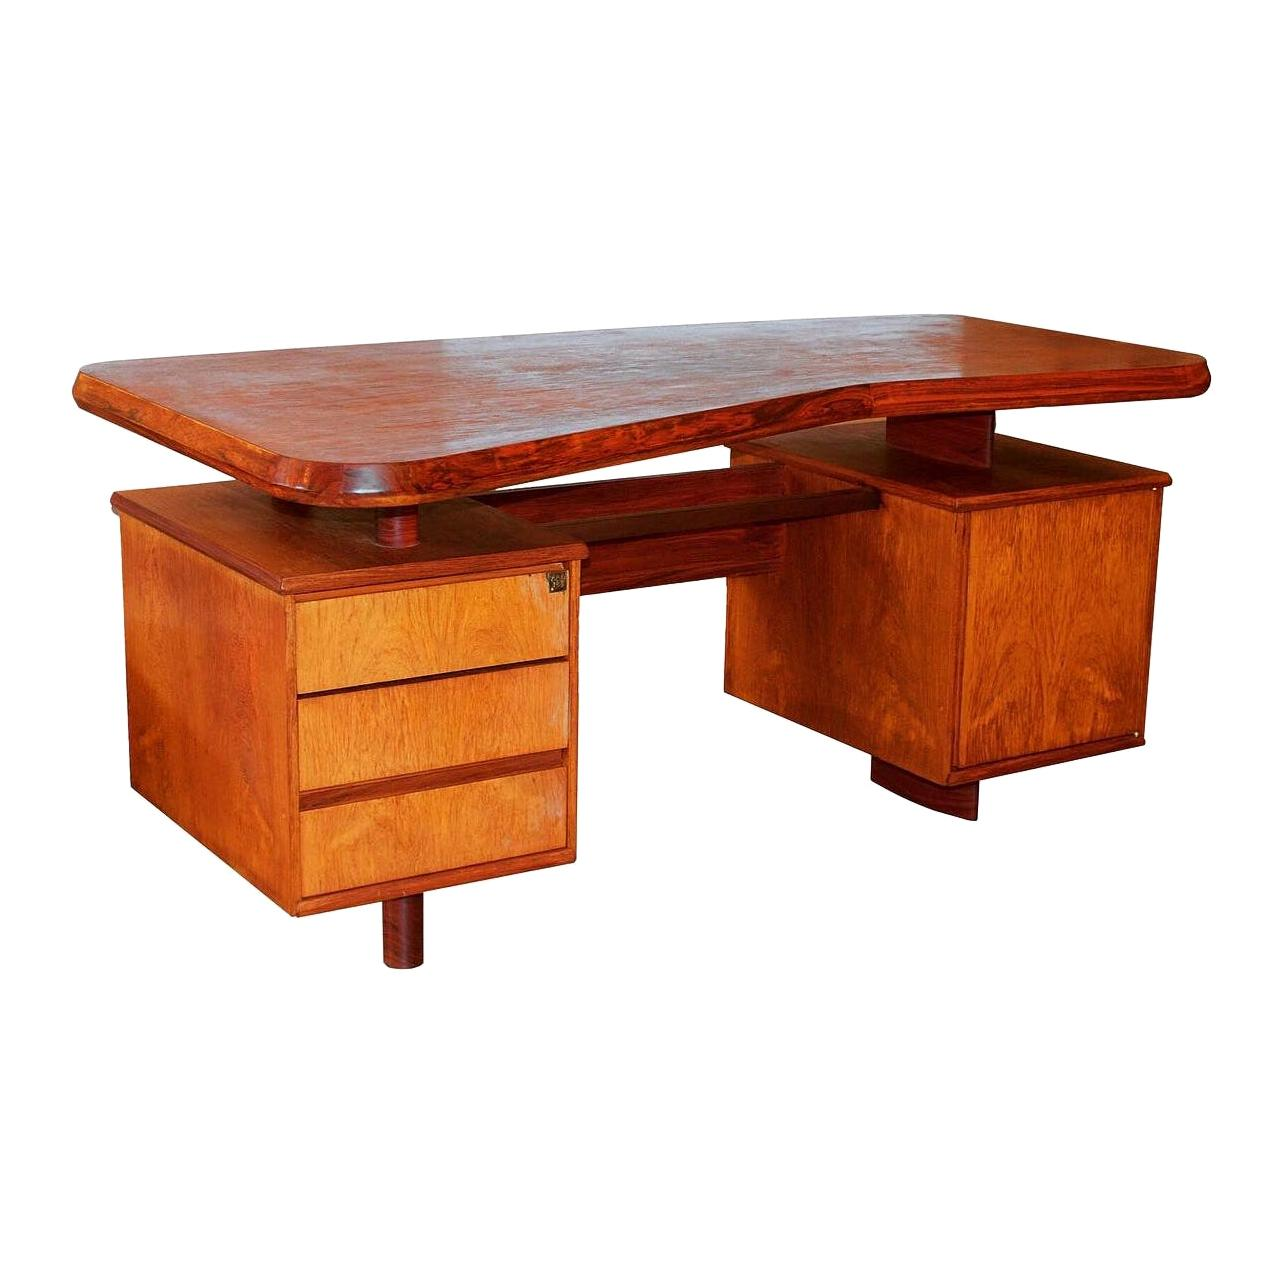 Unique French Modern Solid Rosewood Desk, Pierre Chapo, 1950s